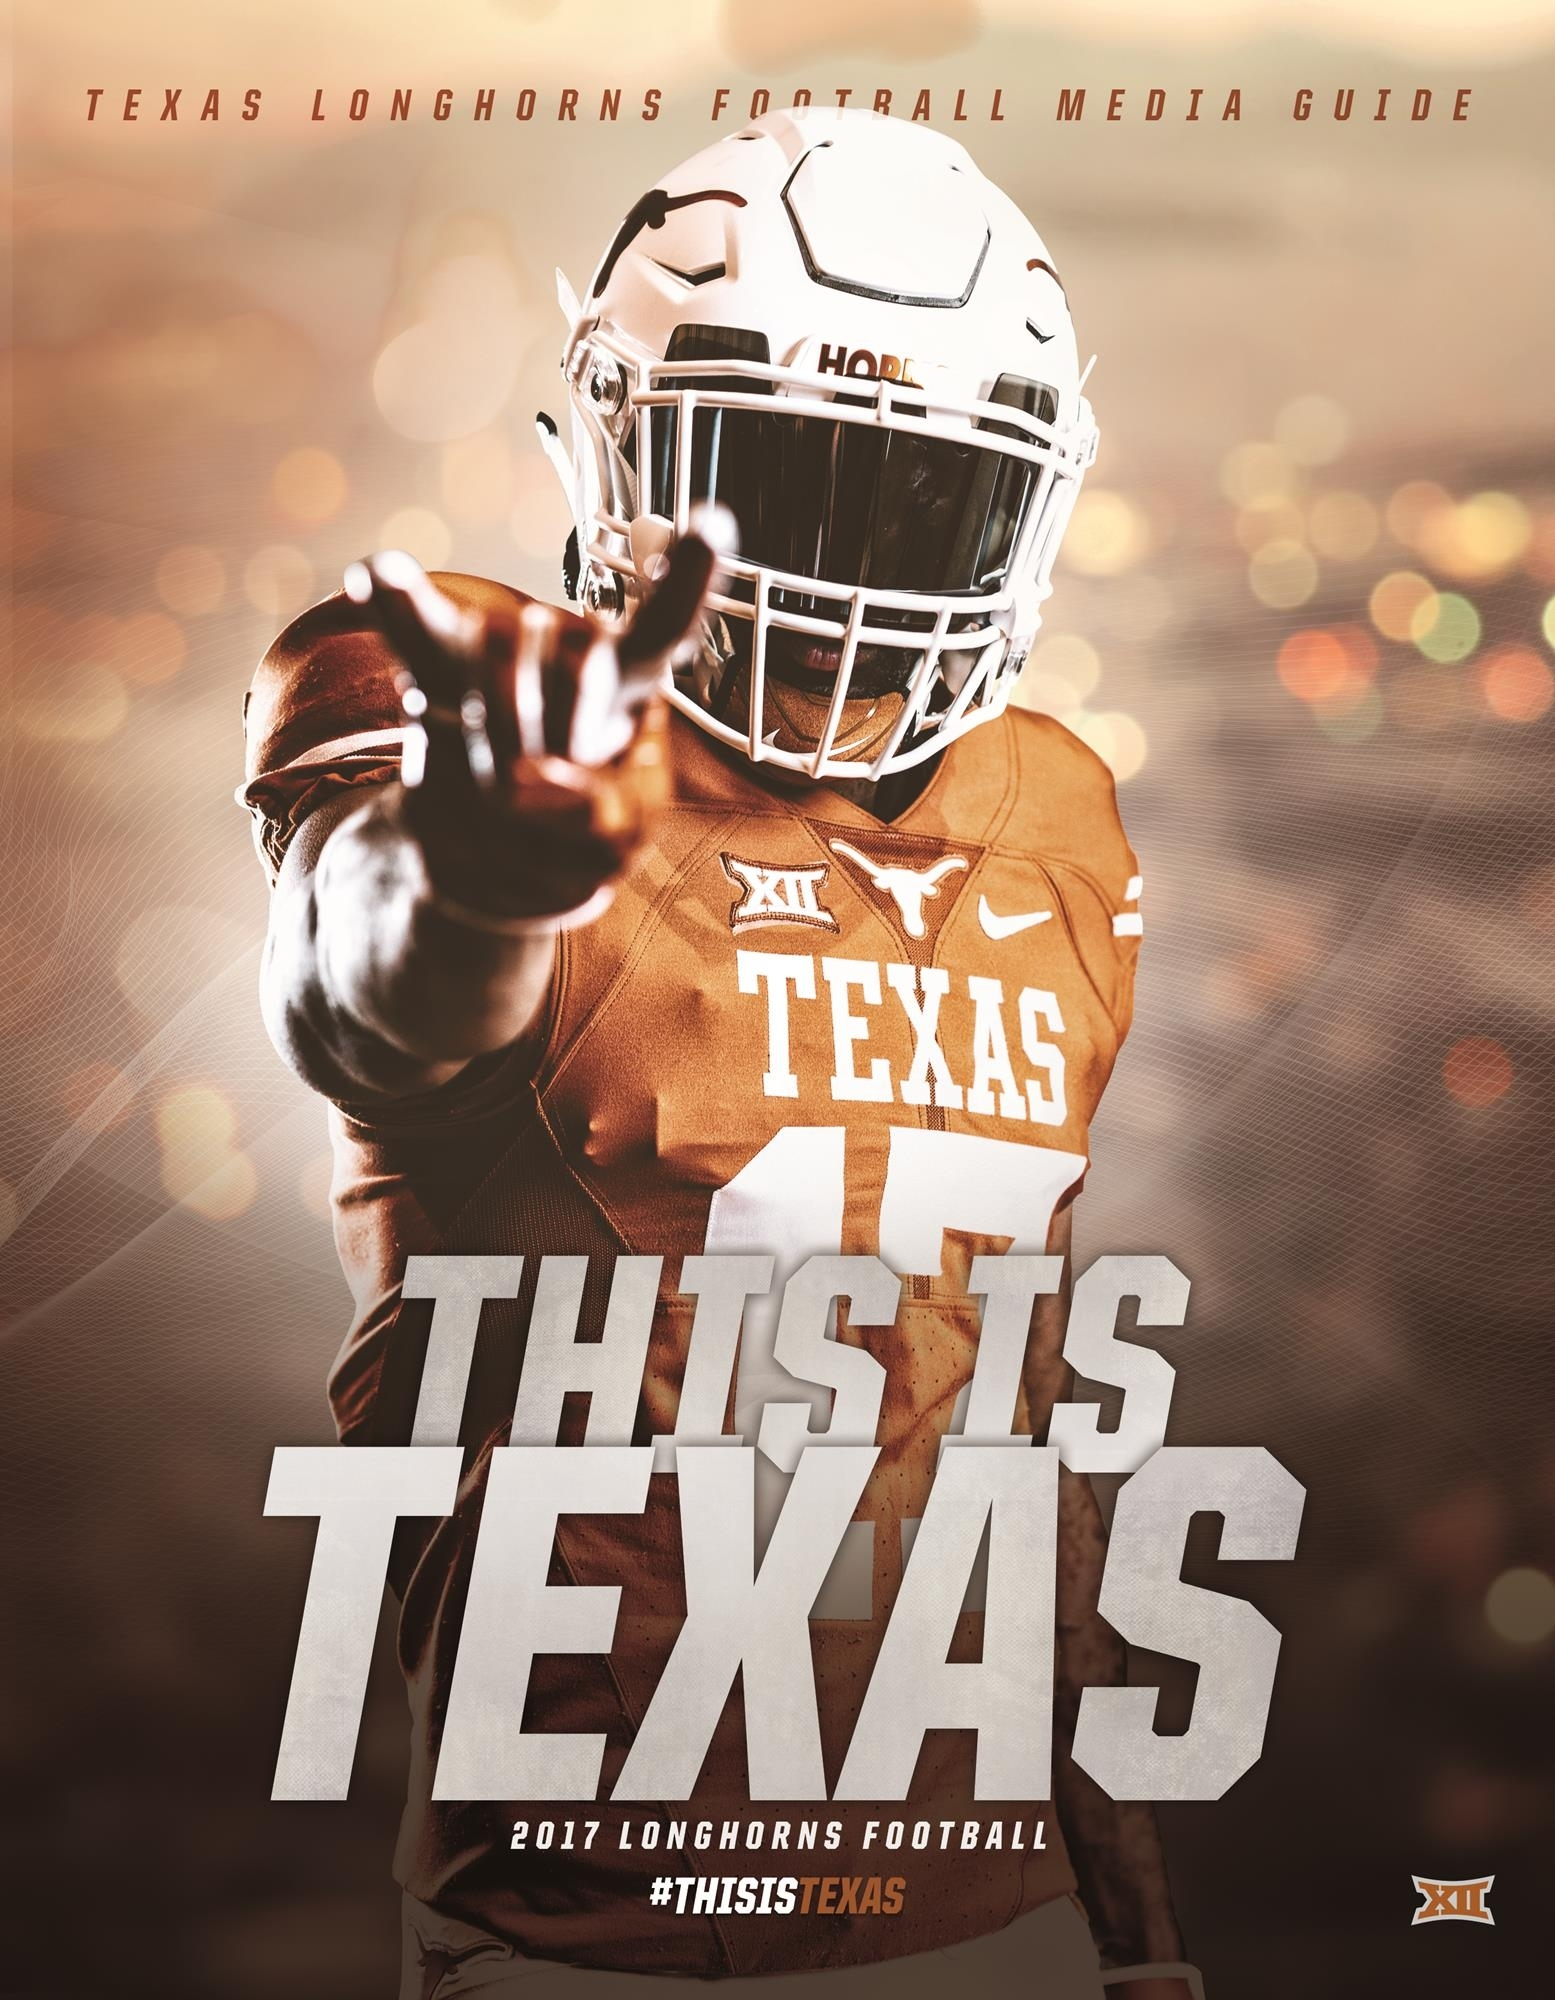 Title Football Media Guide University Of Texas Dimension 1555 X 2000 File Type JPG JPEG 10 Top Longhorns Wallpapers